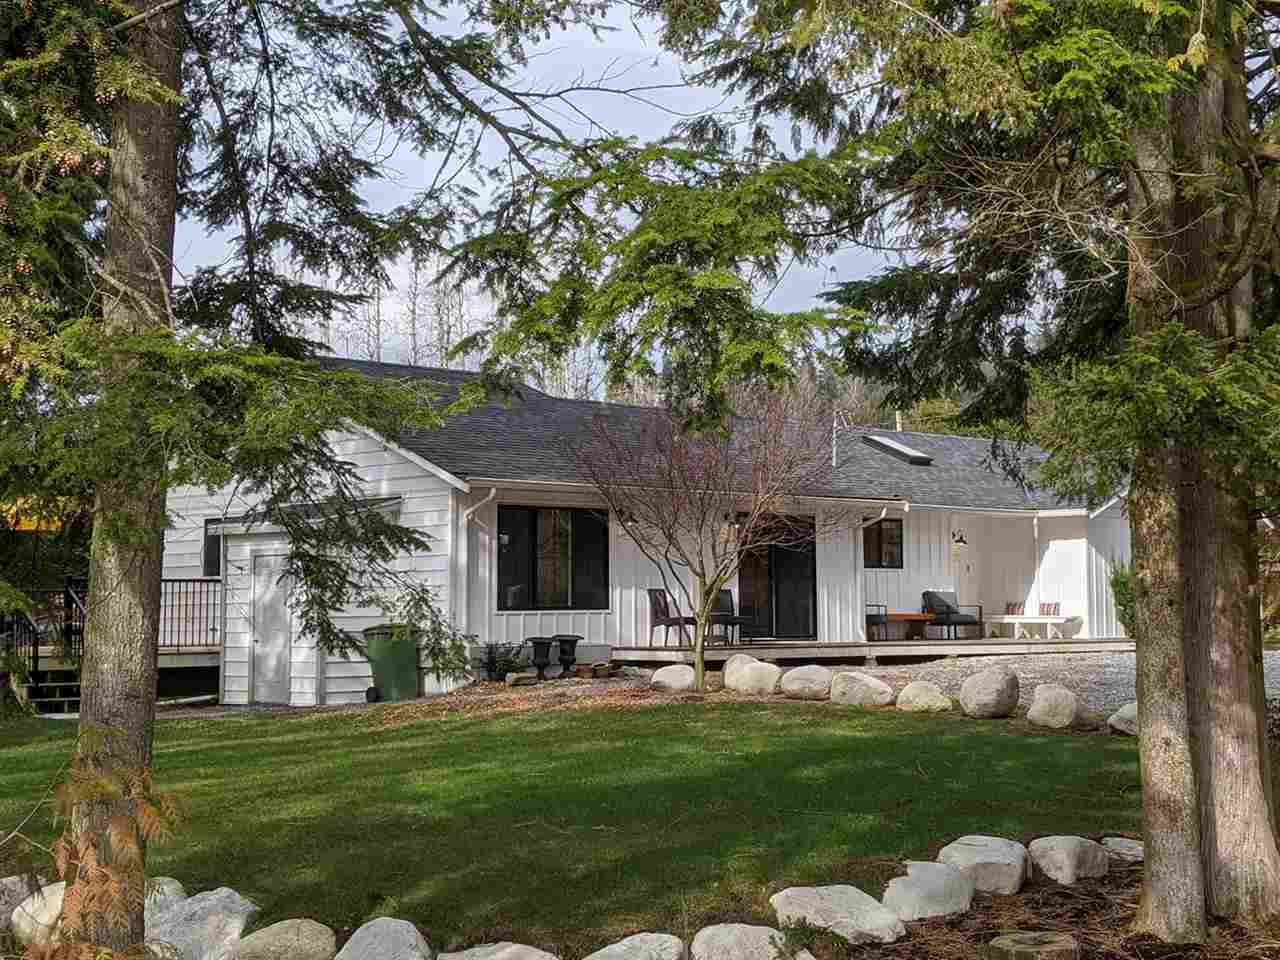 Main Photo: 9239 STAVE LAKE Street in Mission: Mission BC House for sale : MLS®# R2544164